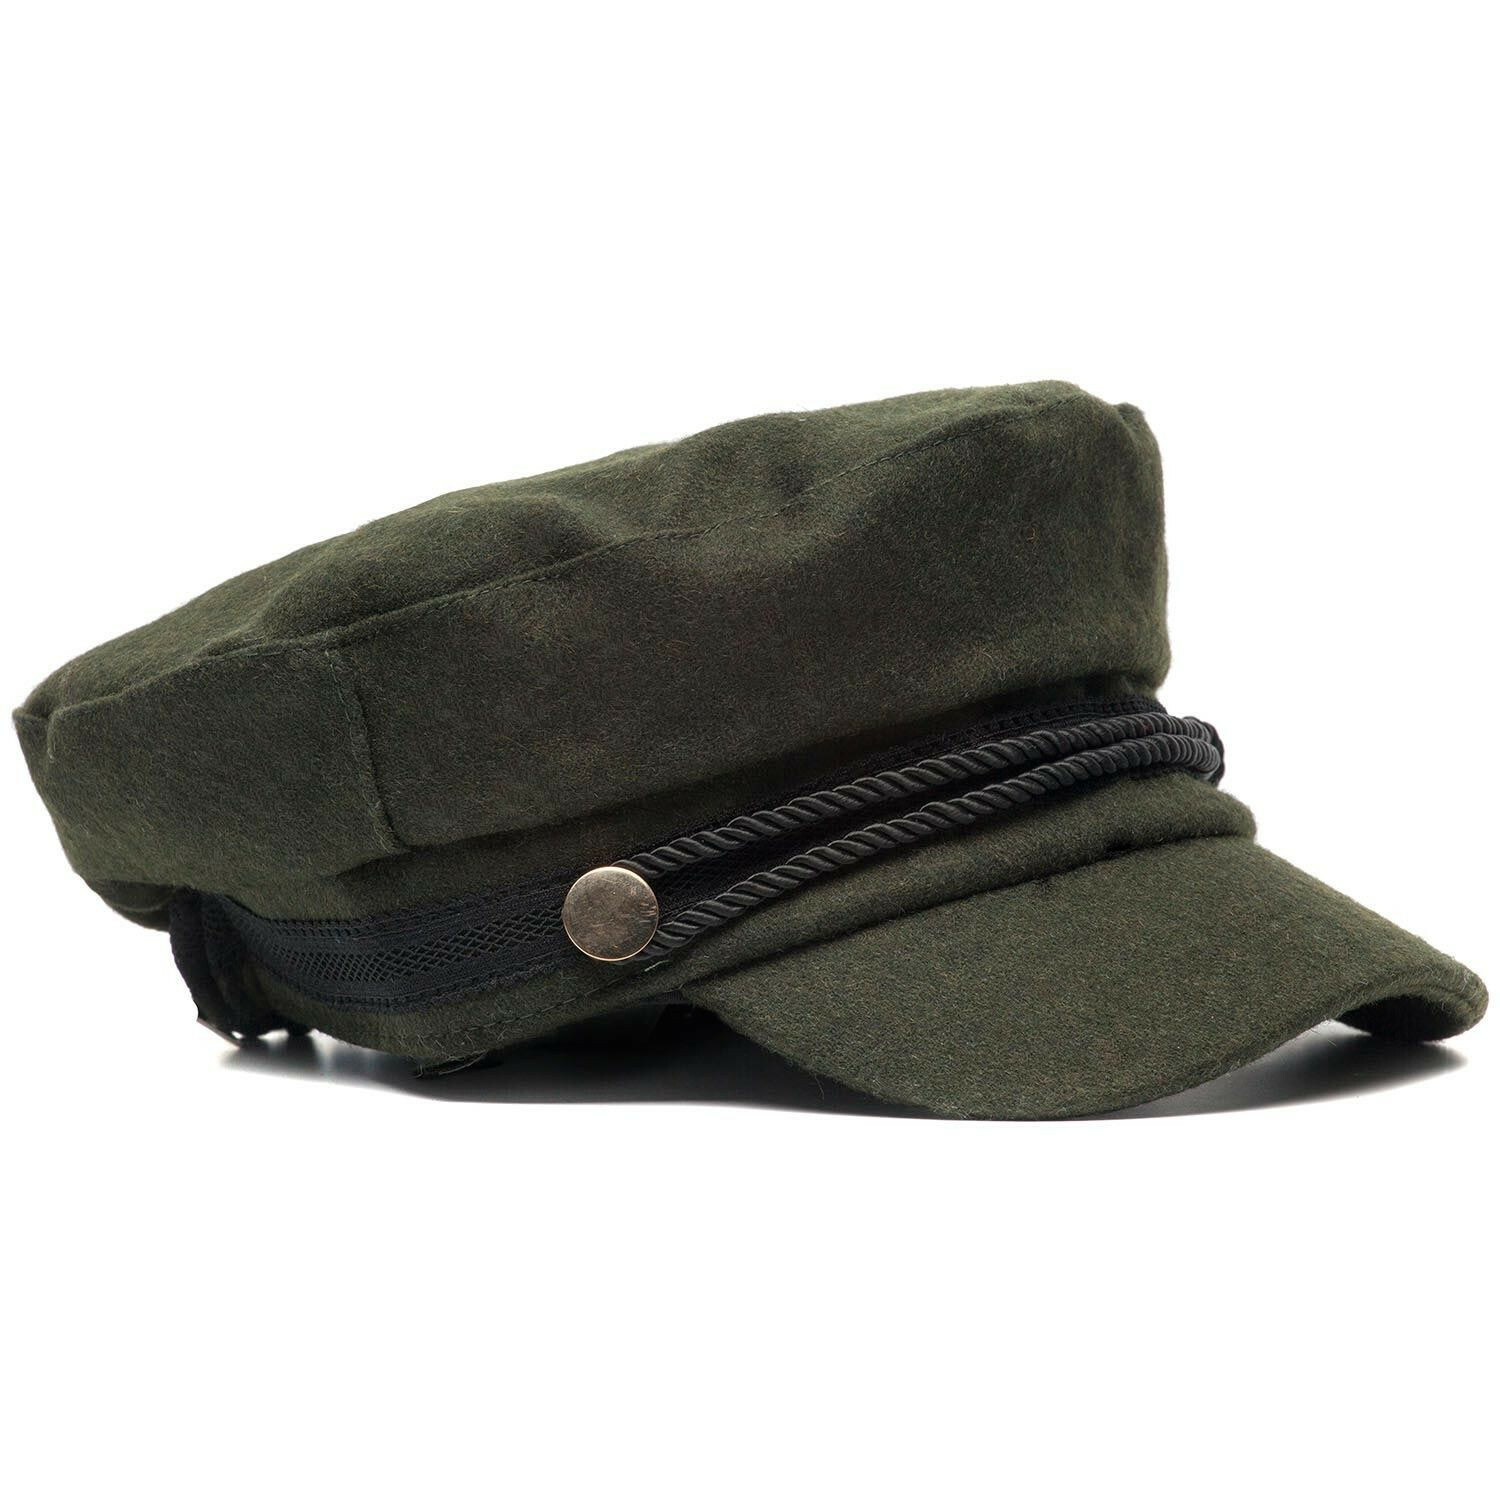 GREEN FISHERMAN'S CAP